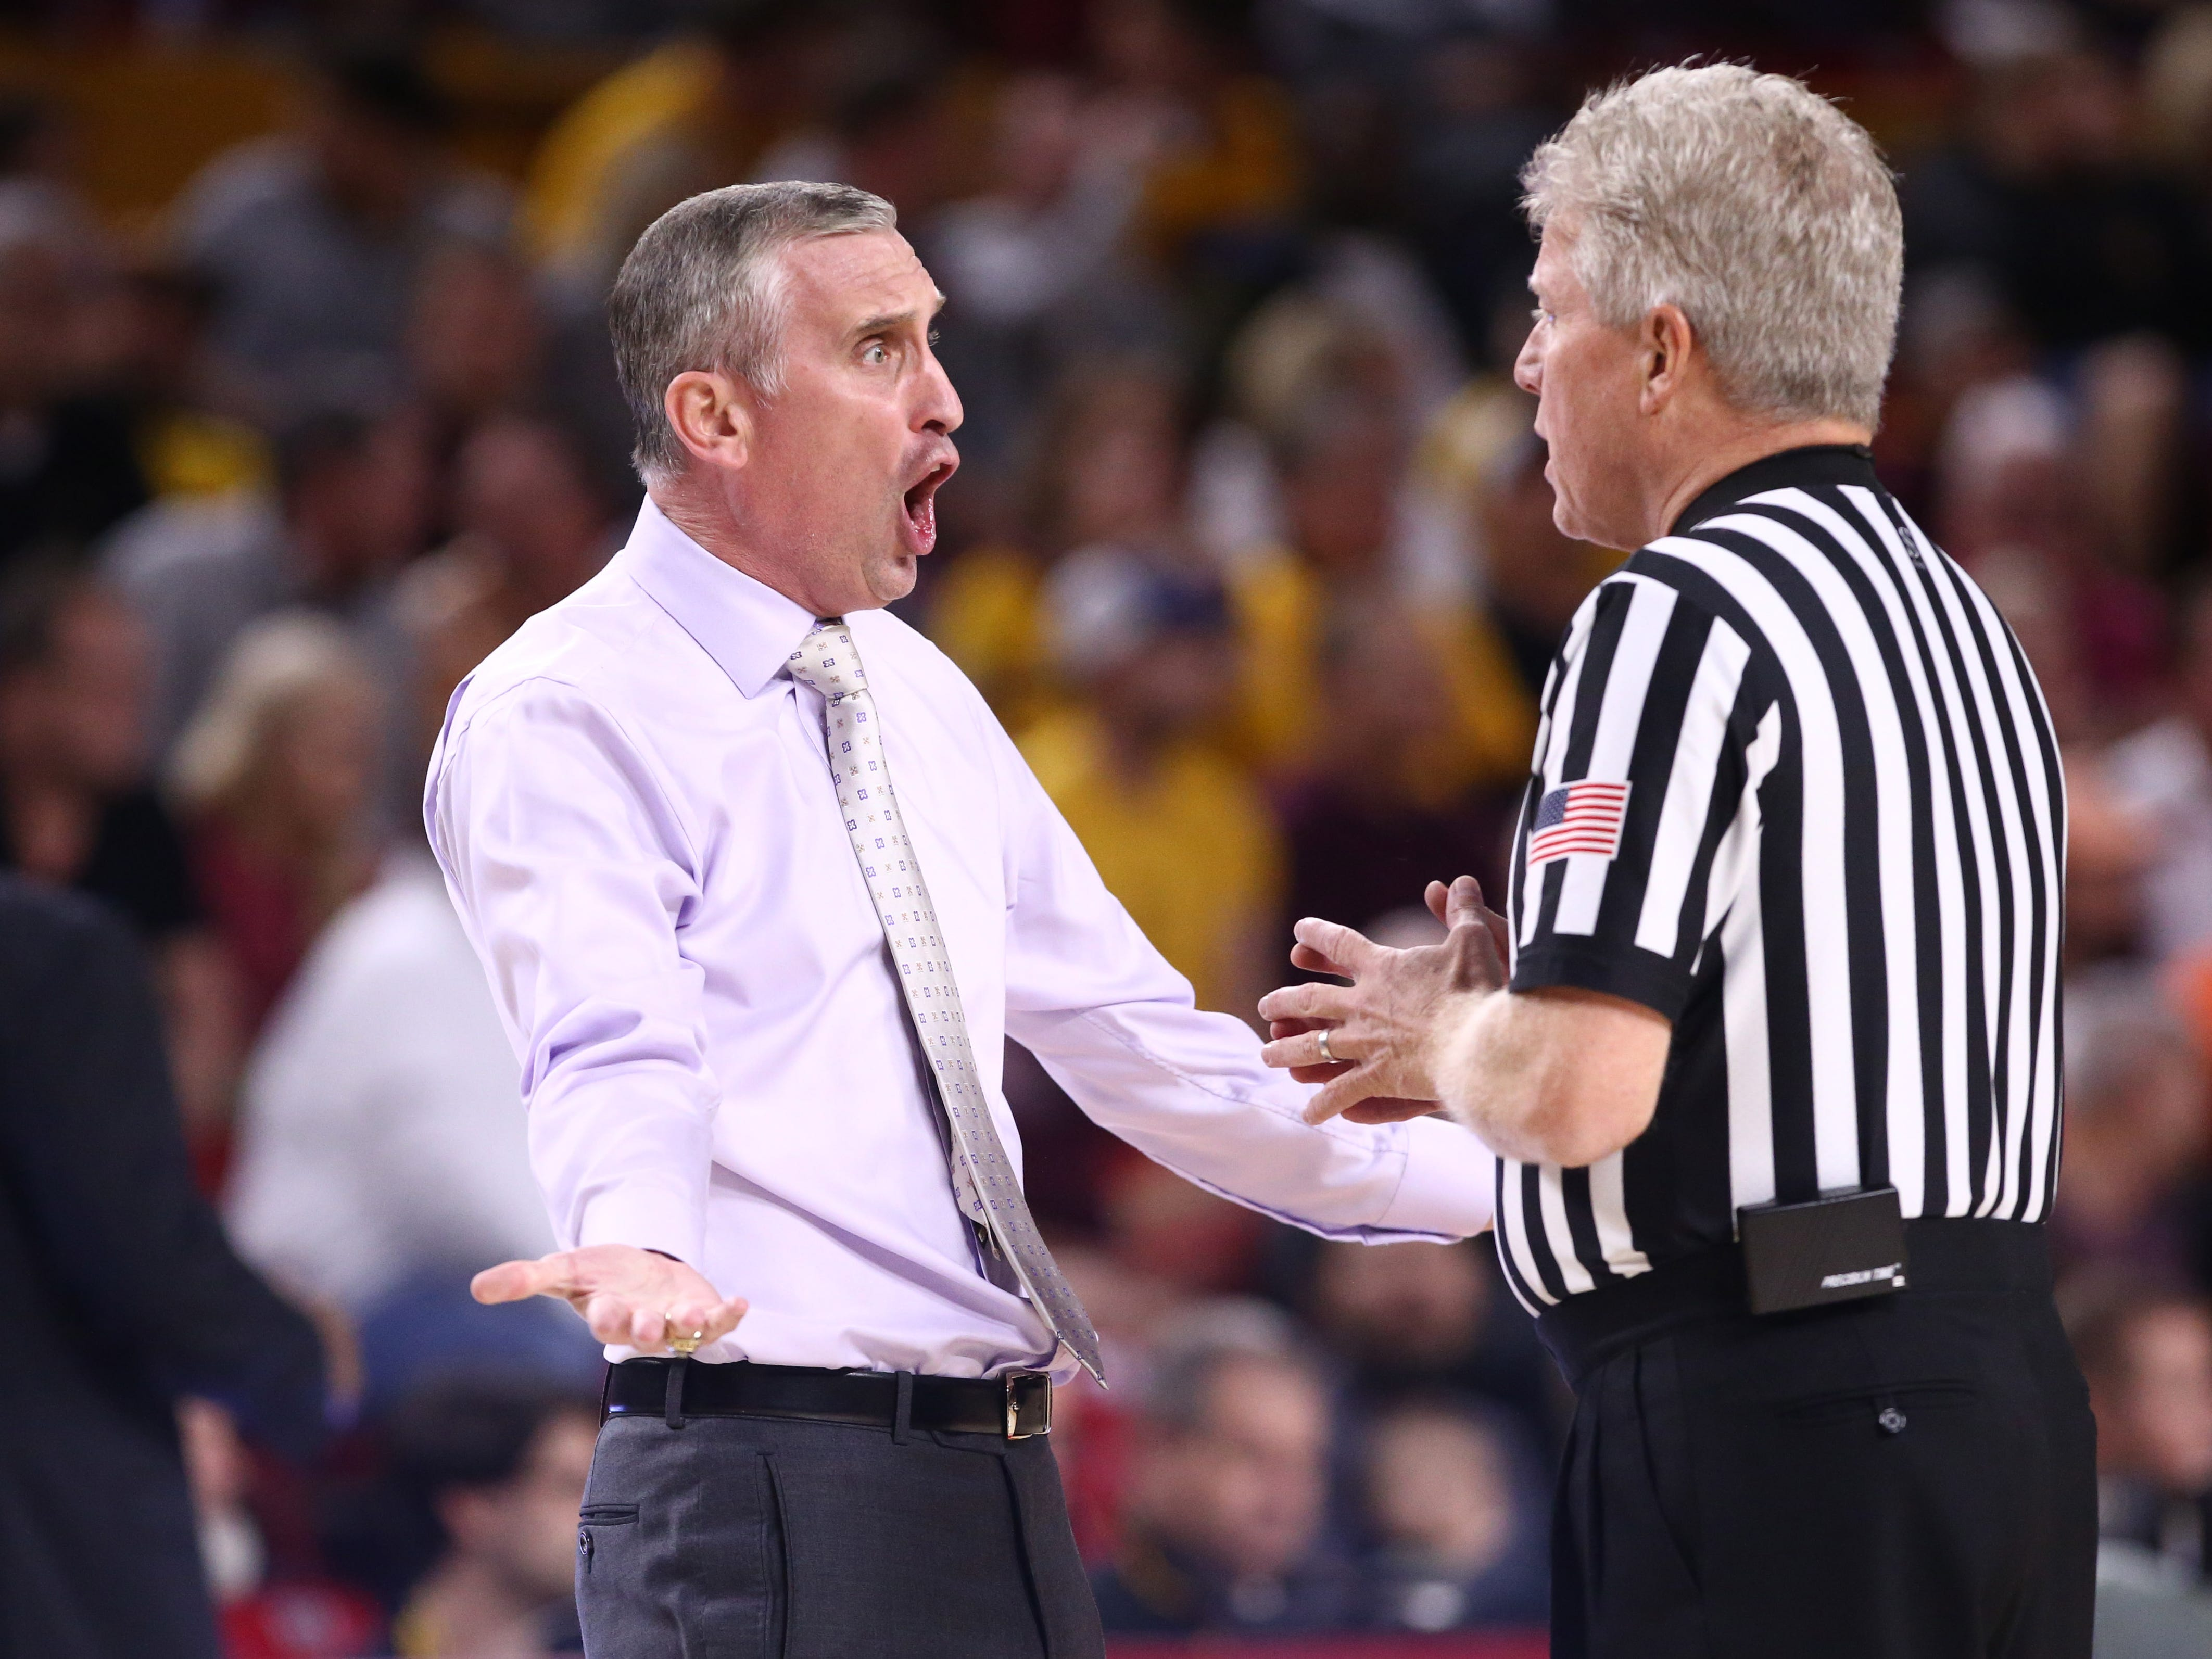 Arizona State Sun Devils head coach Bobby Hurley yells at an offical against the Oregon State Beavers in the first half on Jan. 17 at Wells Fargo Arena in Tempe.